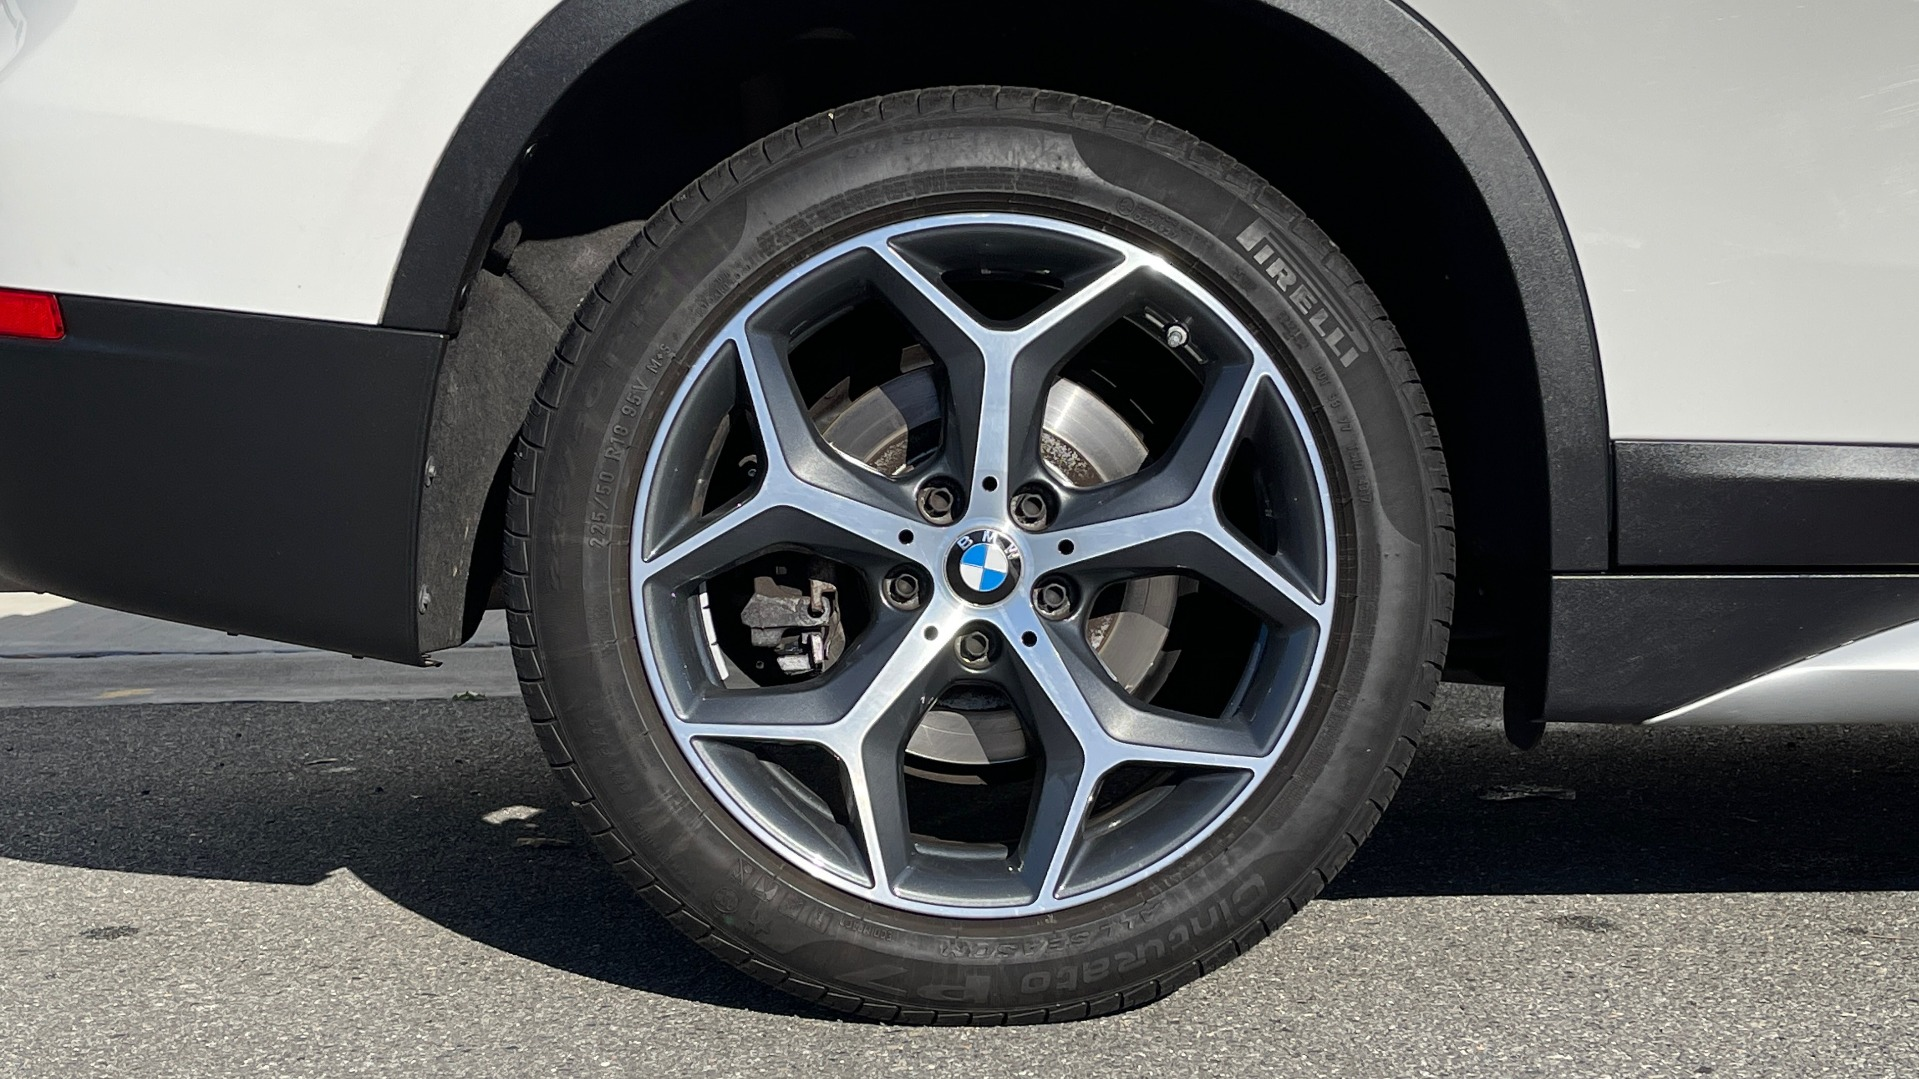 Used 2018 BMW X1 XDRIVE28I / CONV PKG / PANO-ROOF / PARK ASST / REARVIEW for sale $31,995 at Formula Imports in Charlotte NC 28227 60